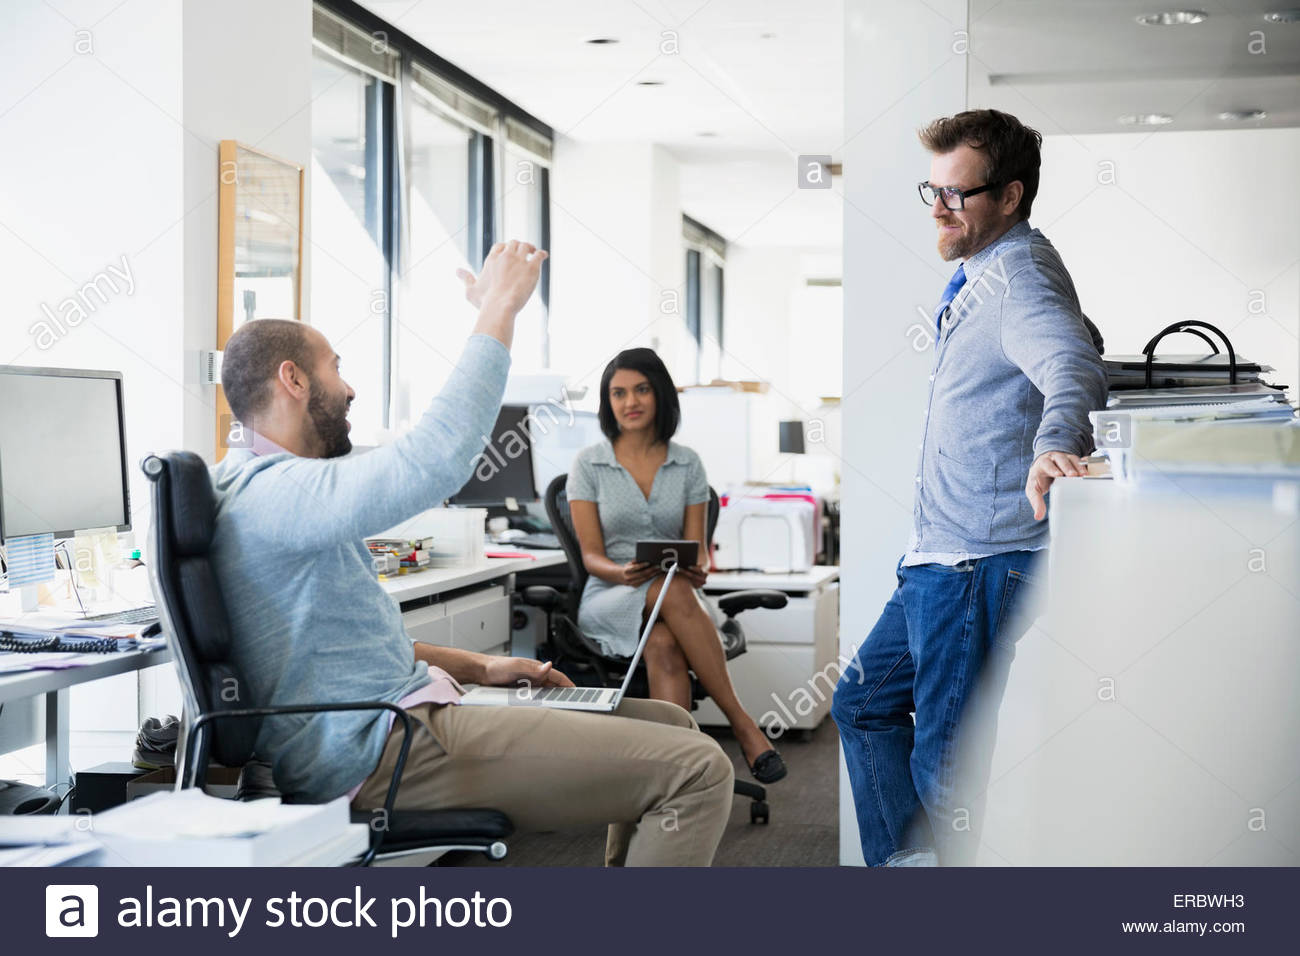 Businessman gesturing and explaining to co-workers office - Stock Image